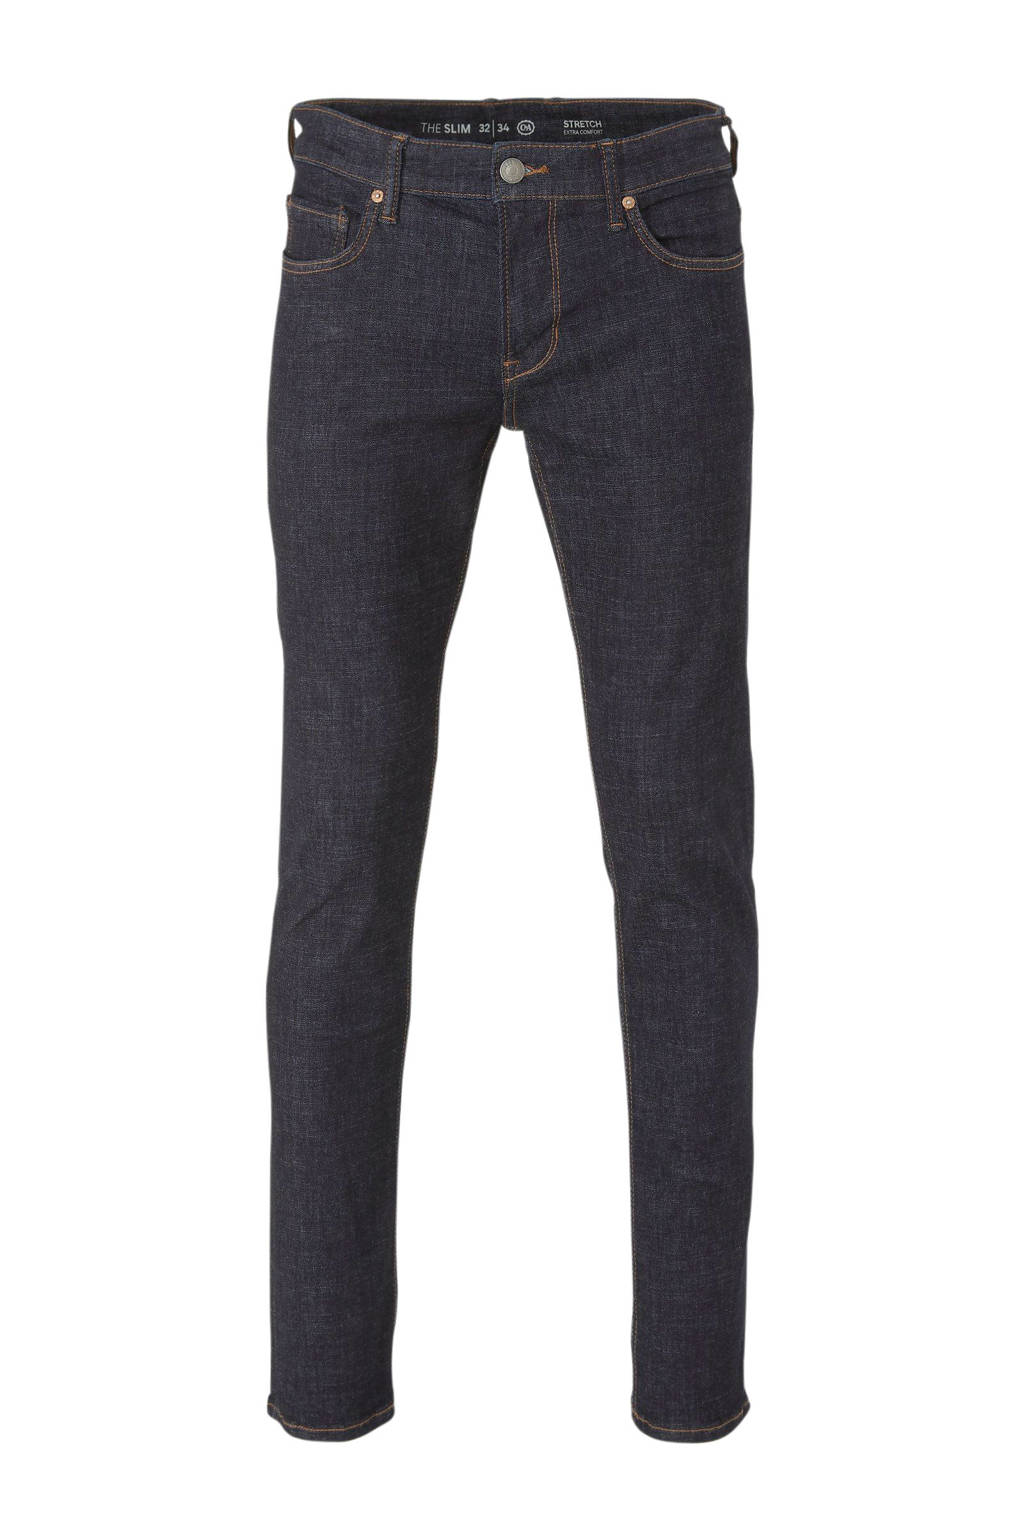 C&A The Denim slim fit jeans dark denim, Dark denim